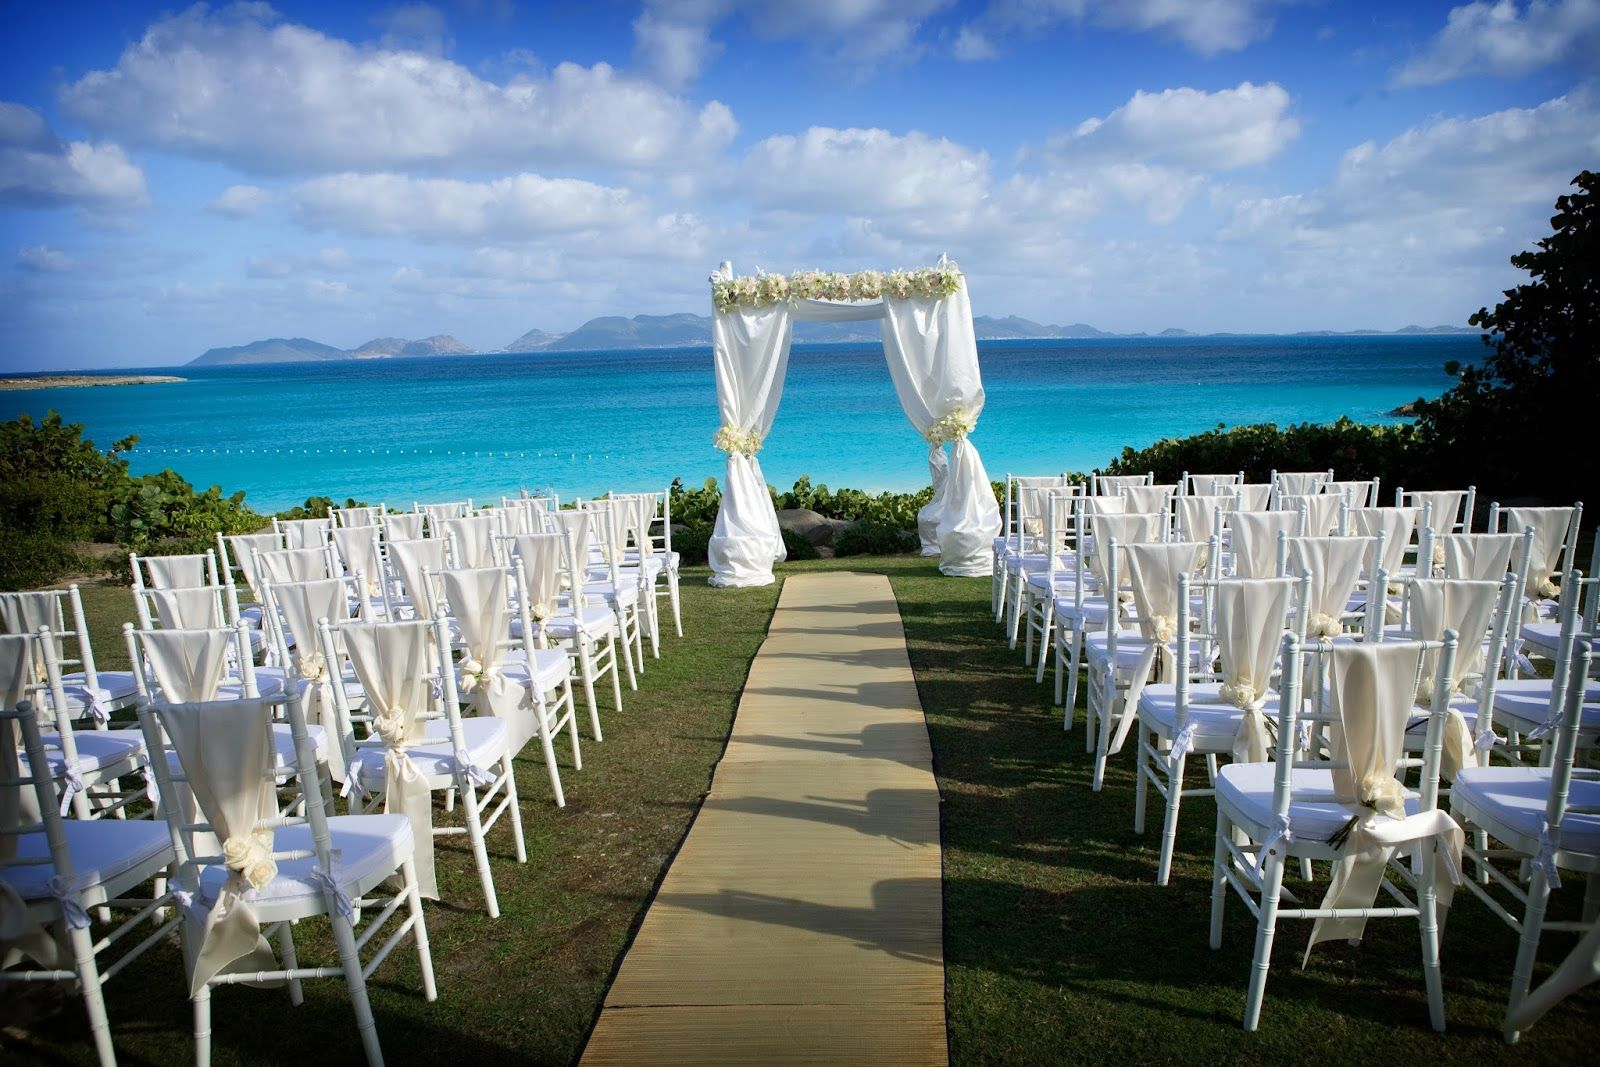 Plan your dream wedding with us . Email us at info